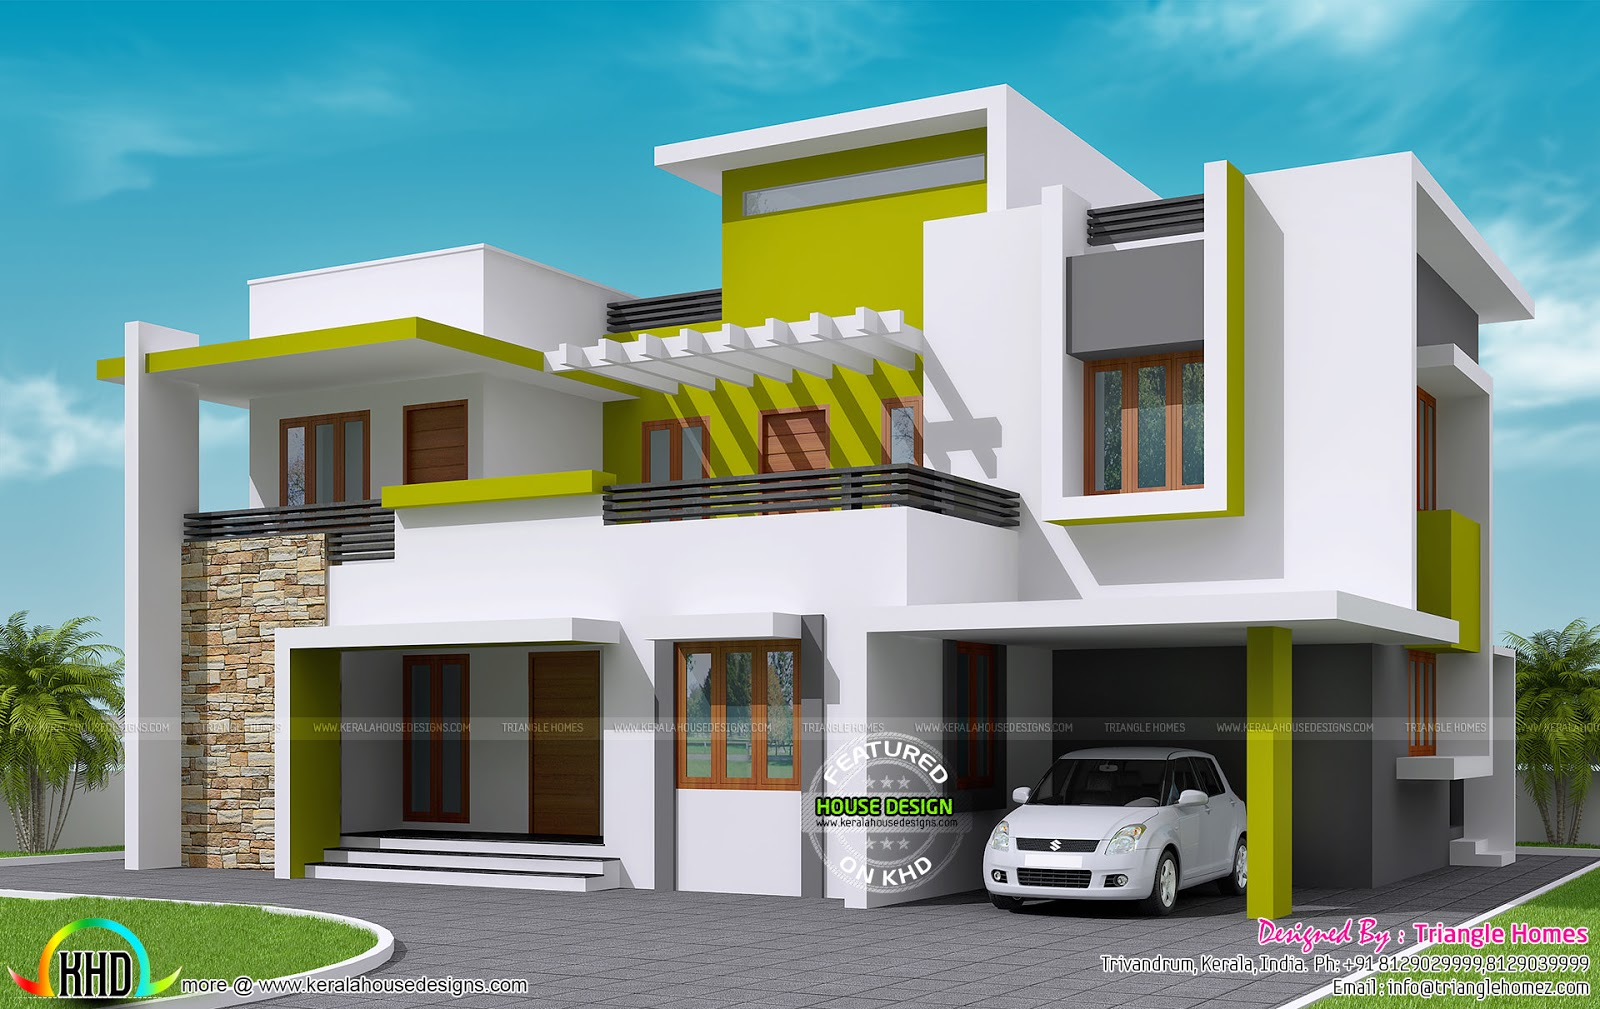 Contemporary model house plans contemporary model house for Contemporary model homes